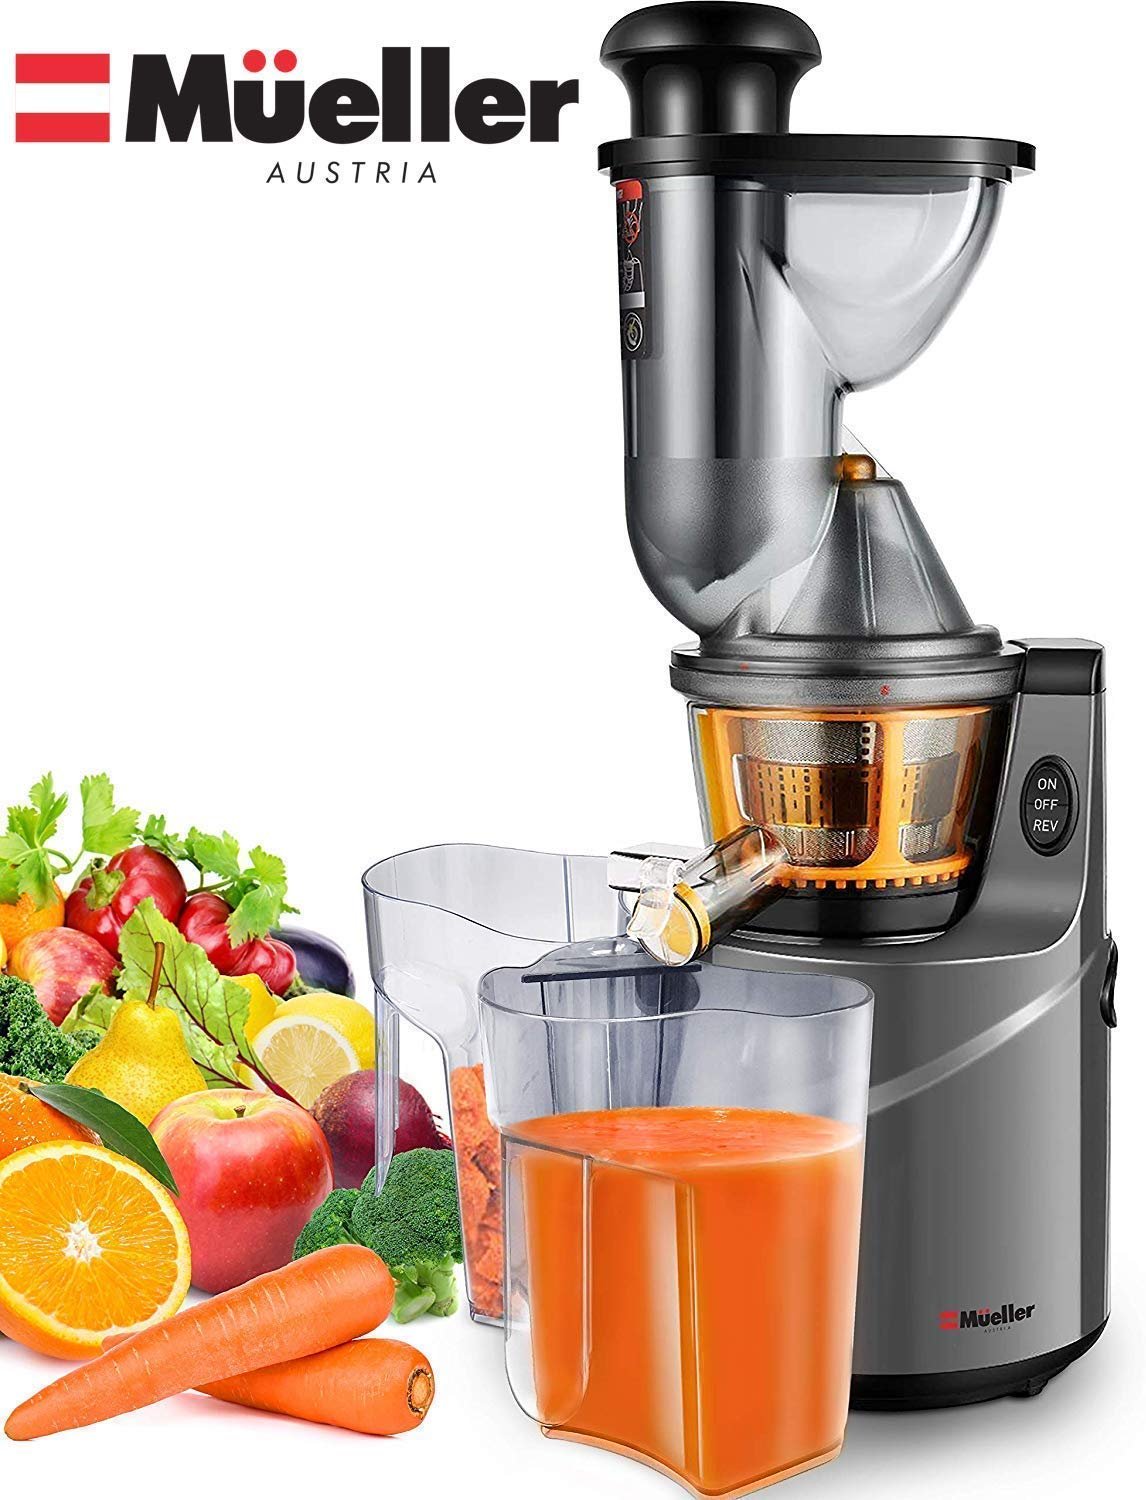 Mueller Austria Ultra Juicer Machine Extractor with Slow Cold Press Masticating Squeezer Mechanism Technology, 3-inch Chute accepts Whole Fruits and Vegetables, Easy Clean, Large